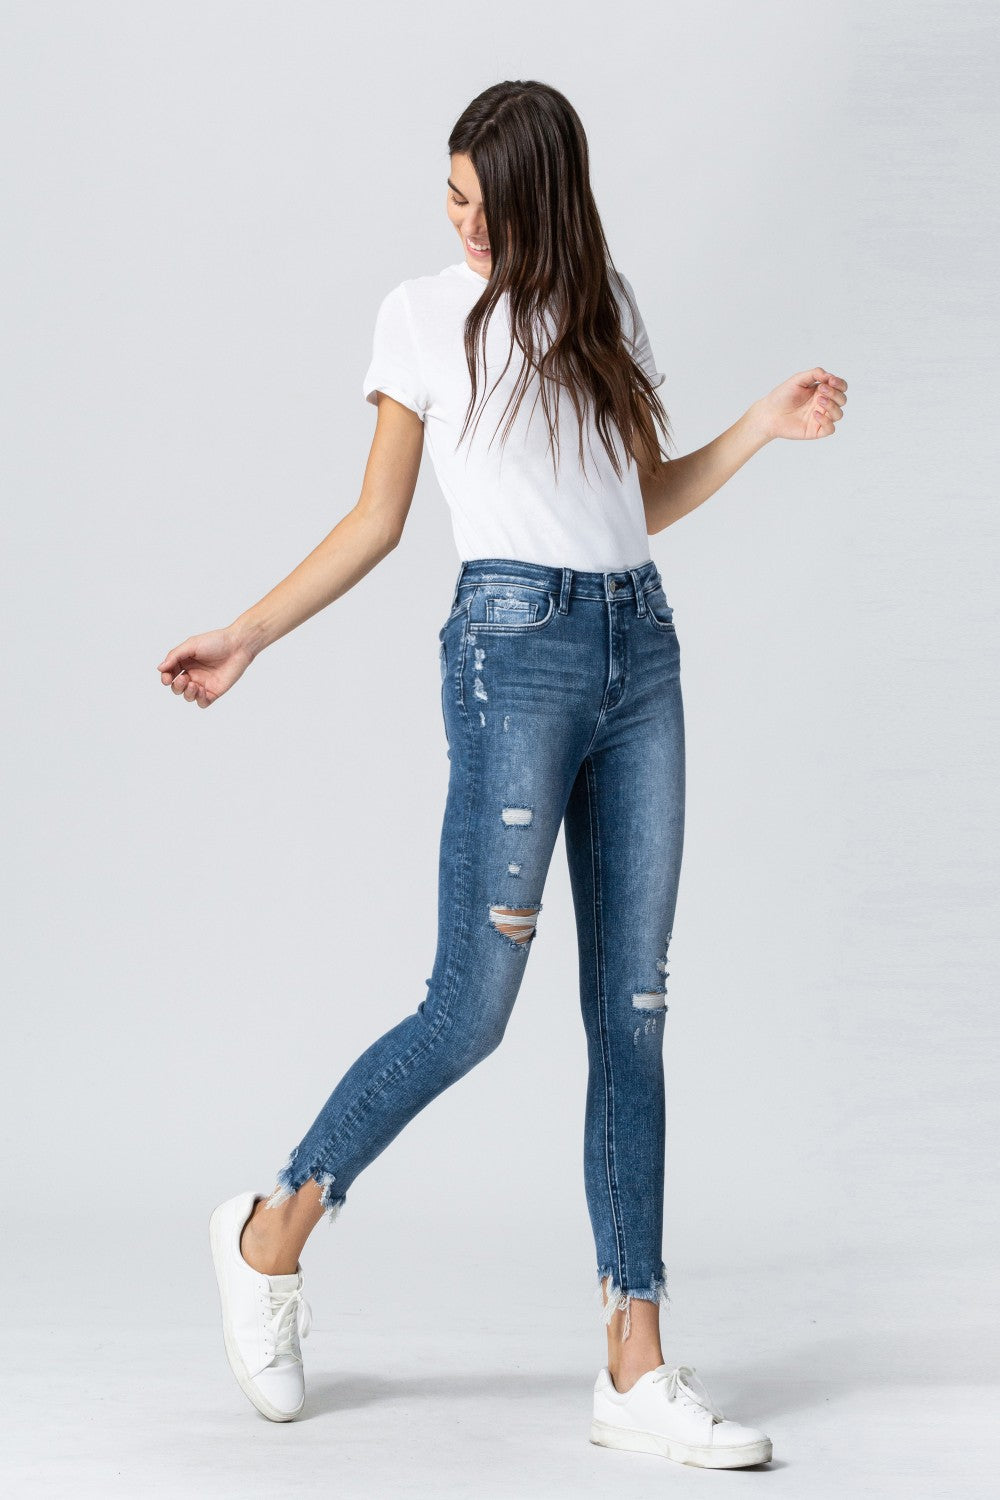 Y3524 - high rise uneven fray hem crop skinny